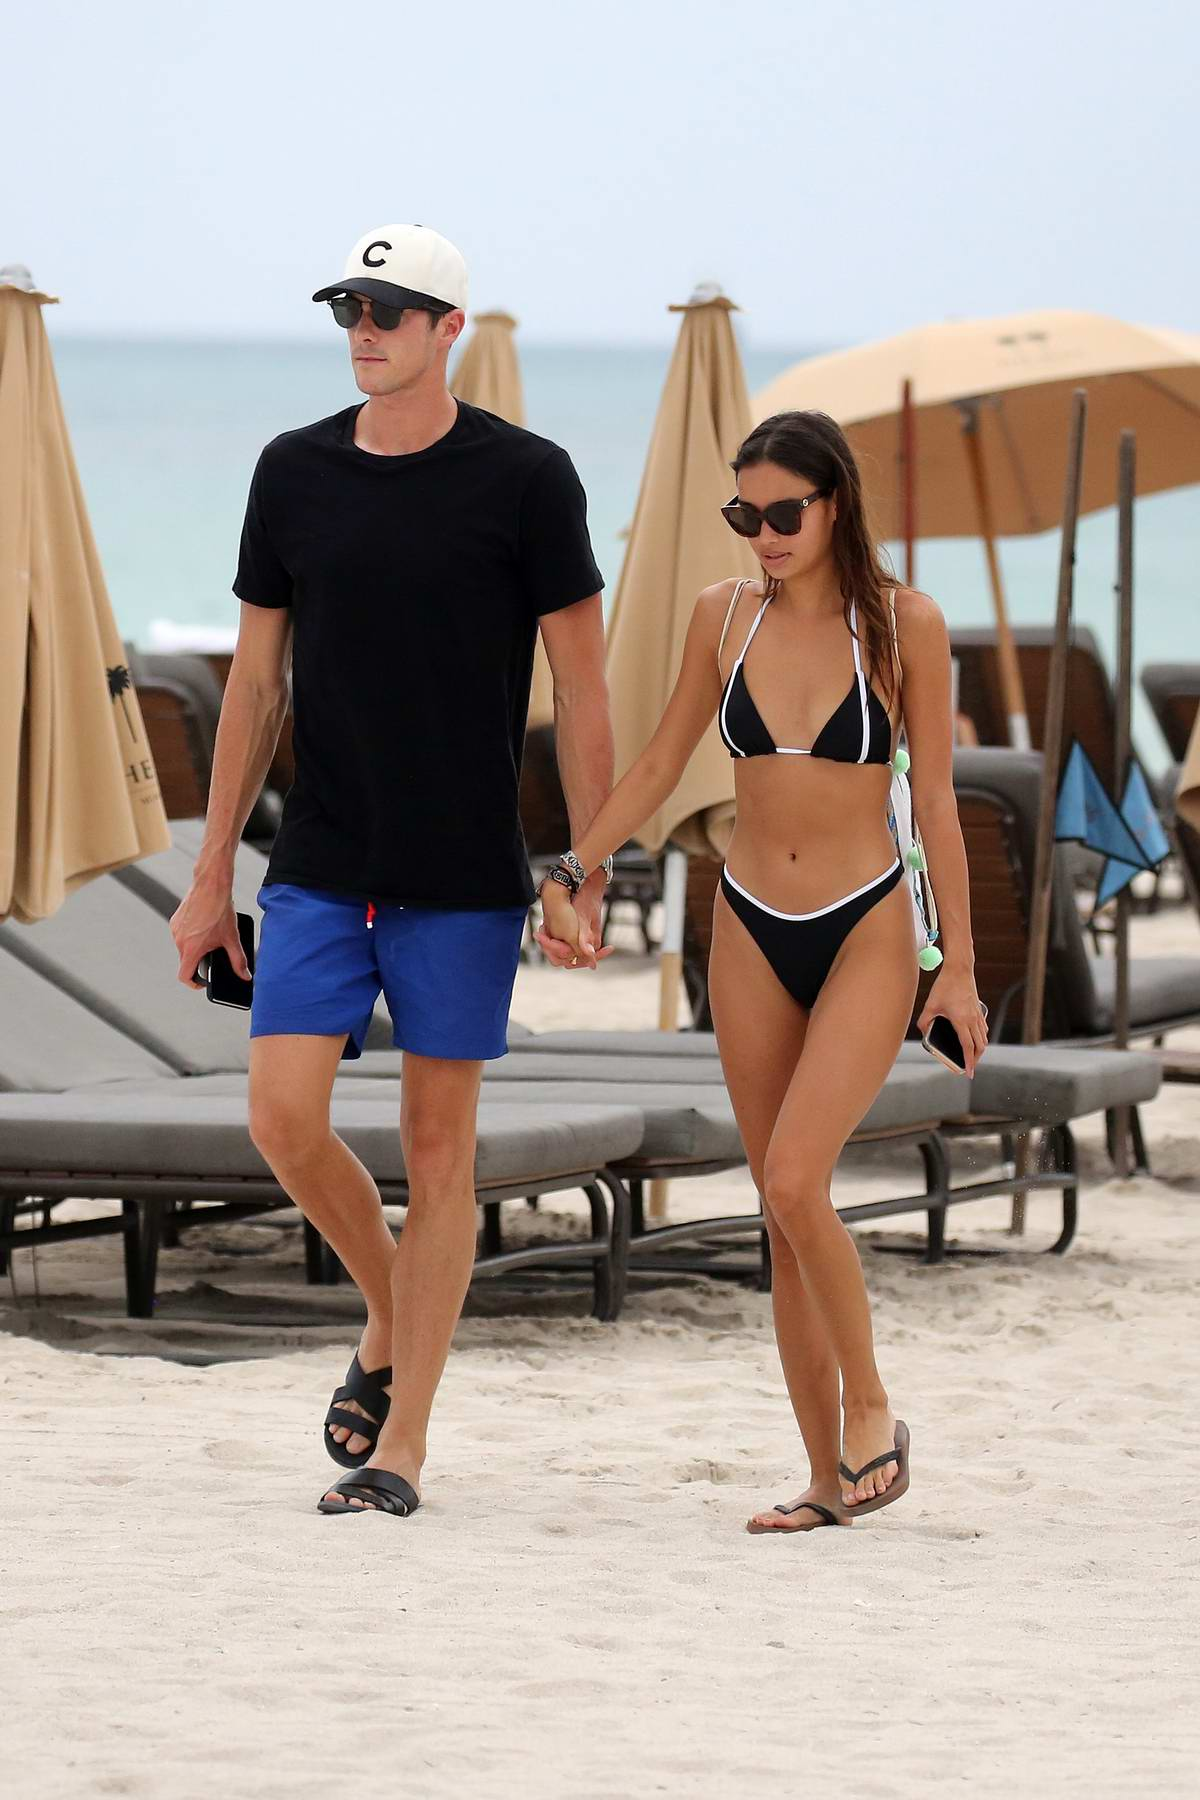 Kelsey Merritt and Conor Dwyer show off their beach bodies as they hit the waves in Miami, Florida